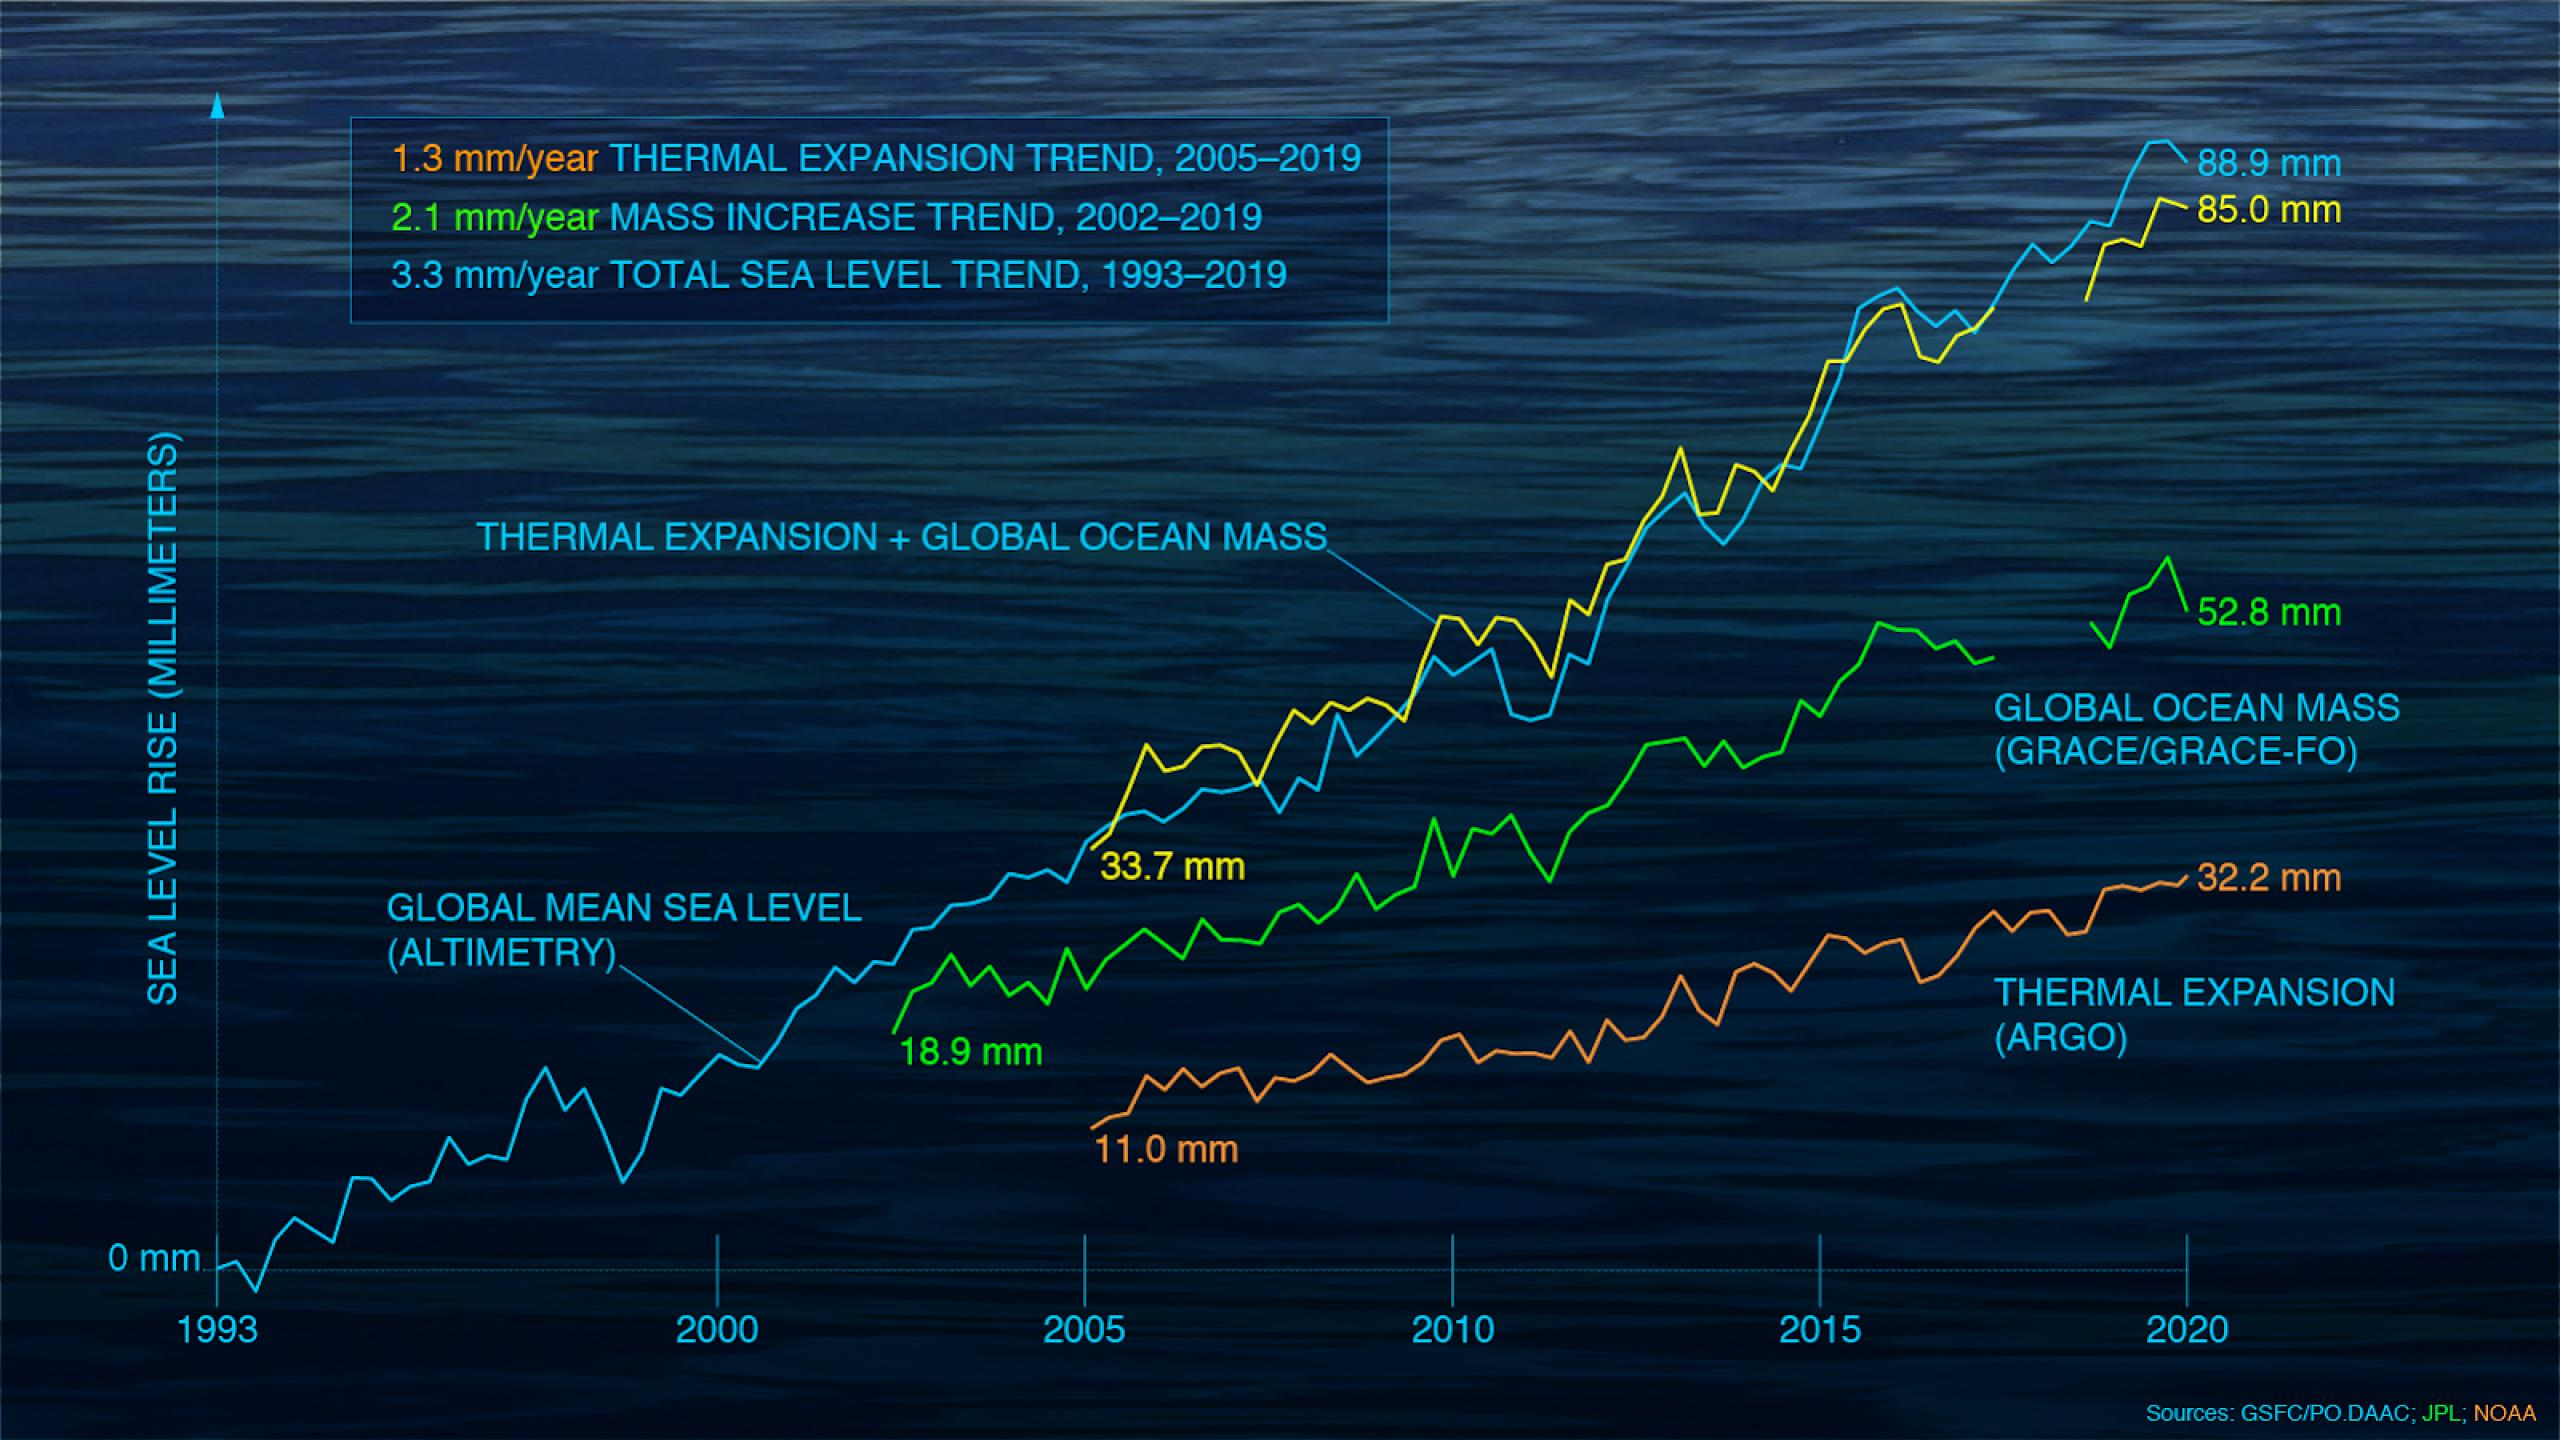 Chart illustrating the increase in thermal expansion and sea level rise